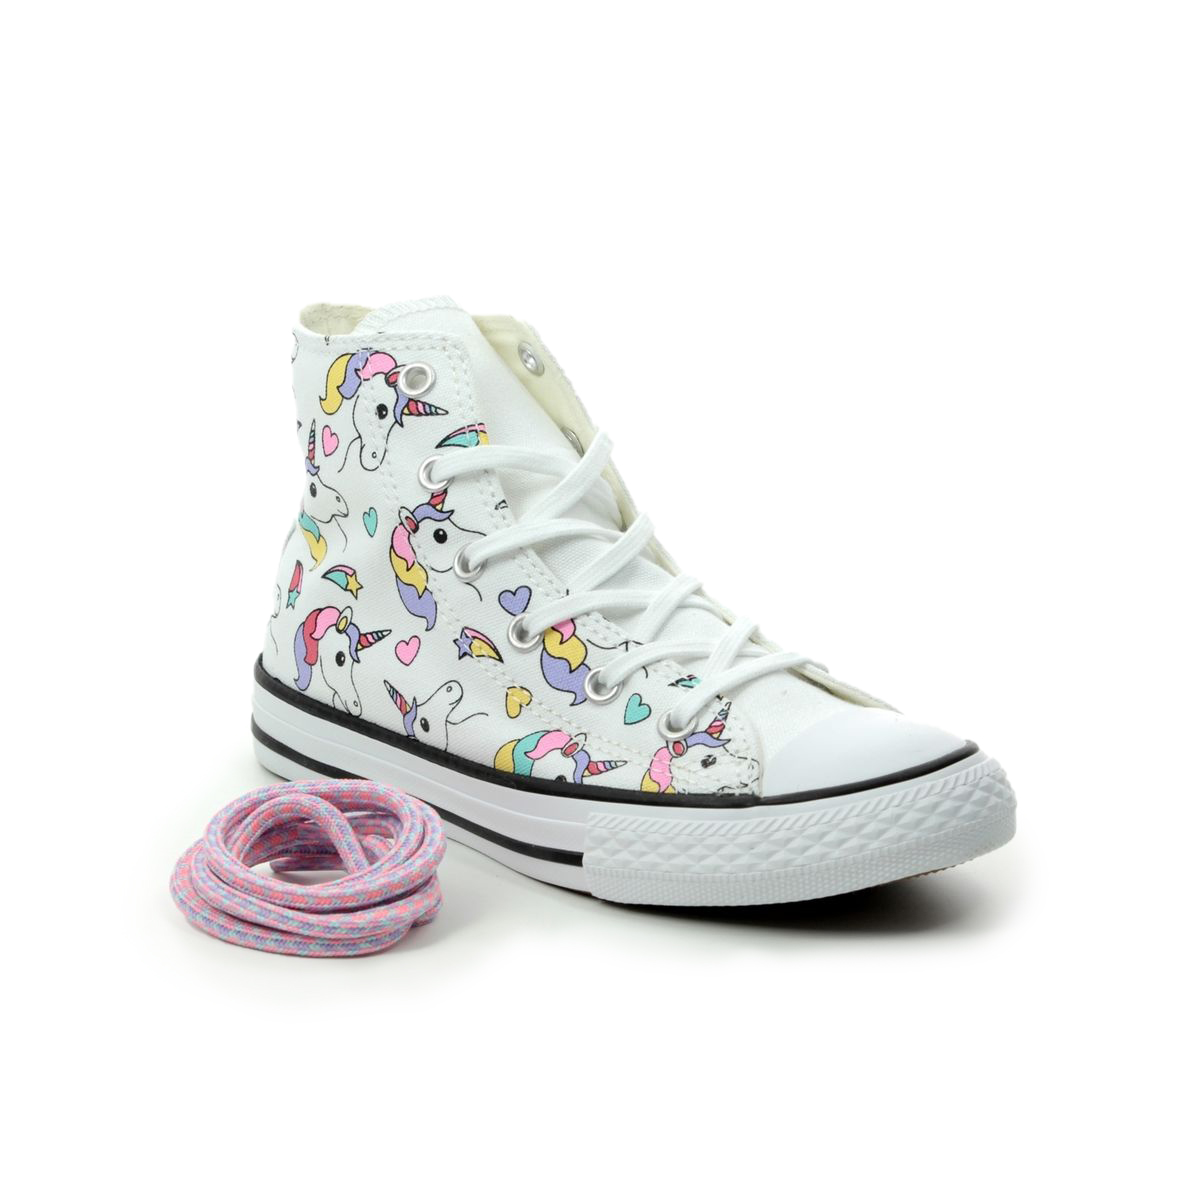 Baby White Converse Pram Shoes 663994c Unicorn Hi Top